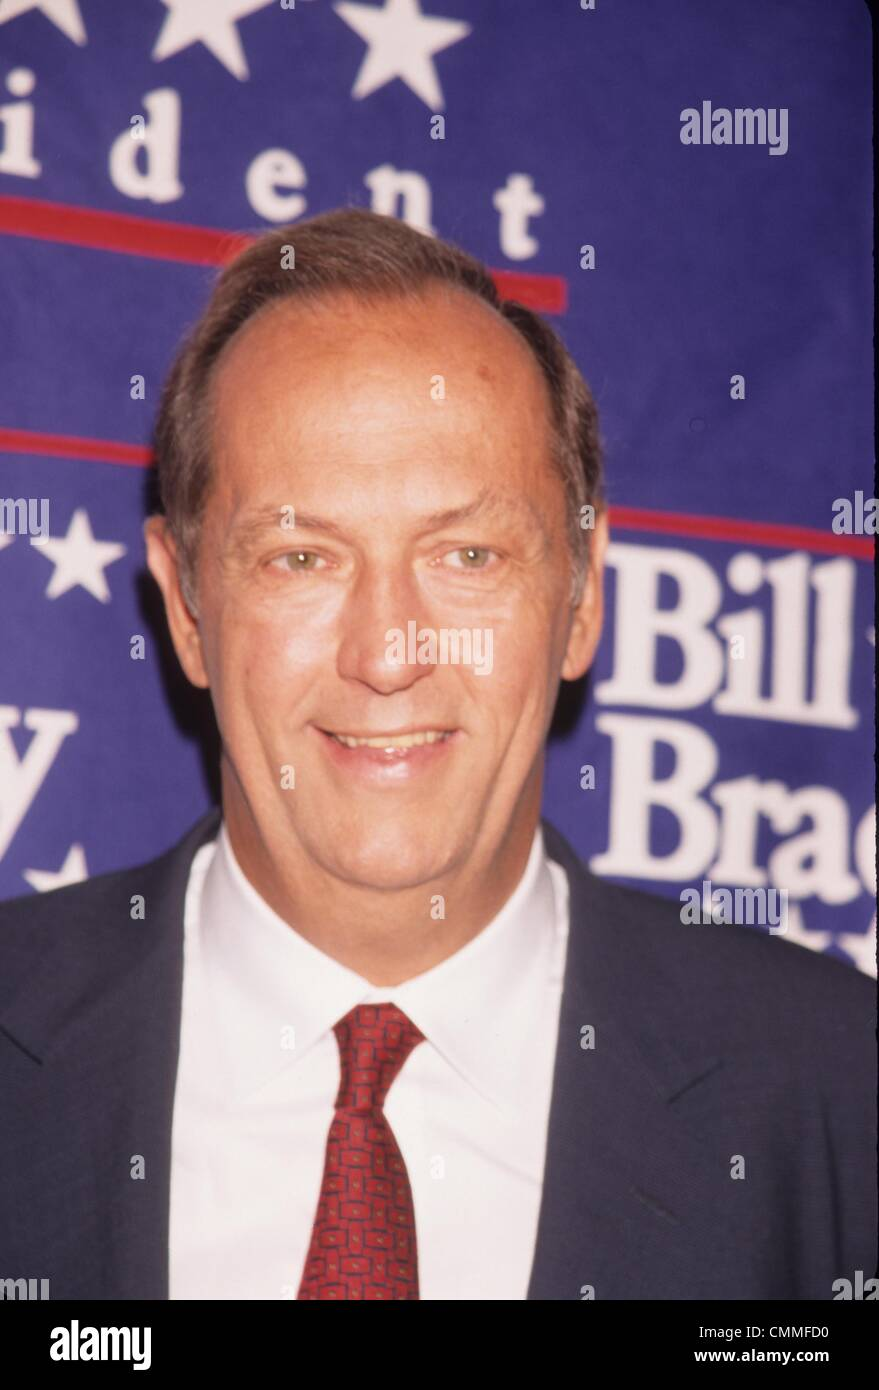 BILL BRADLEY Sen Patrick Moynihan endorses Bill Bradley for Stock